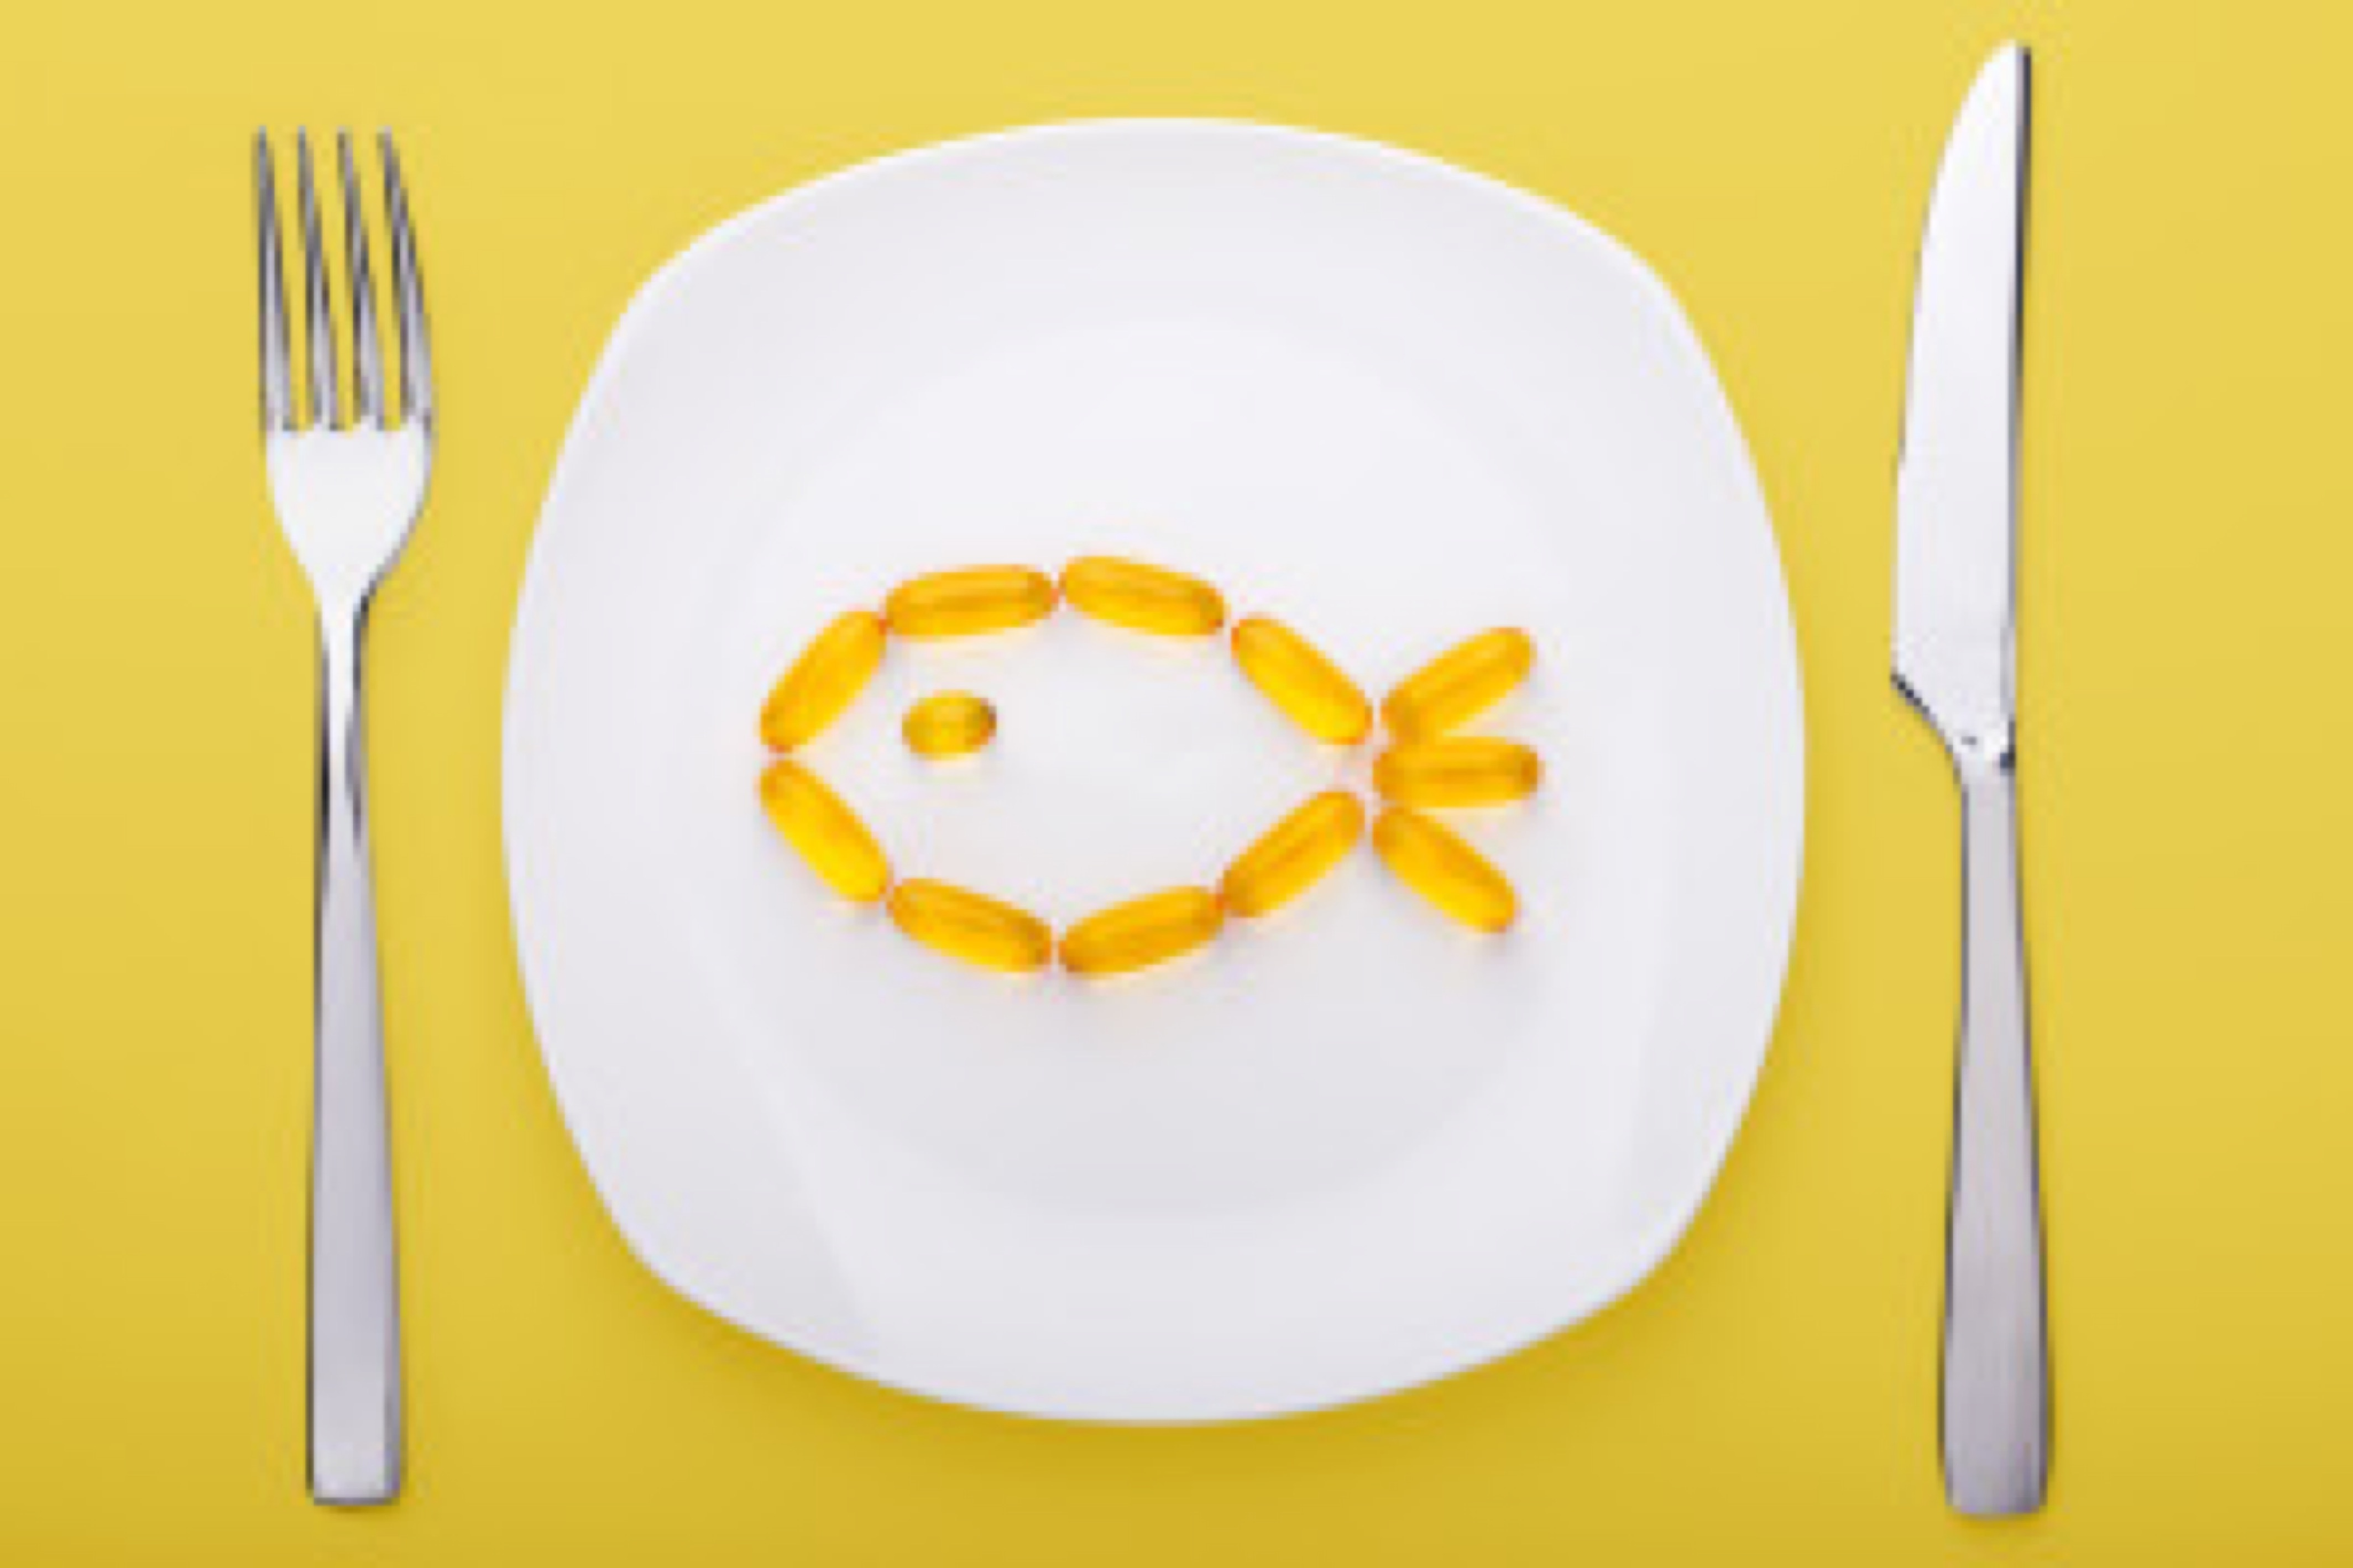 fish oil soft gels lying on white porcelain plate in the form of fish (yellow background)